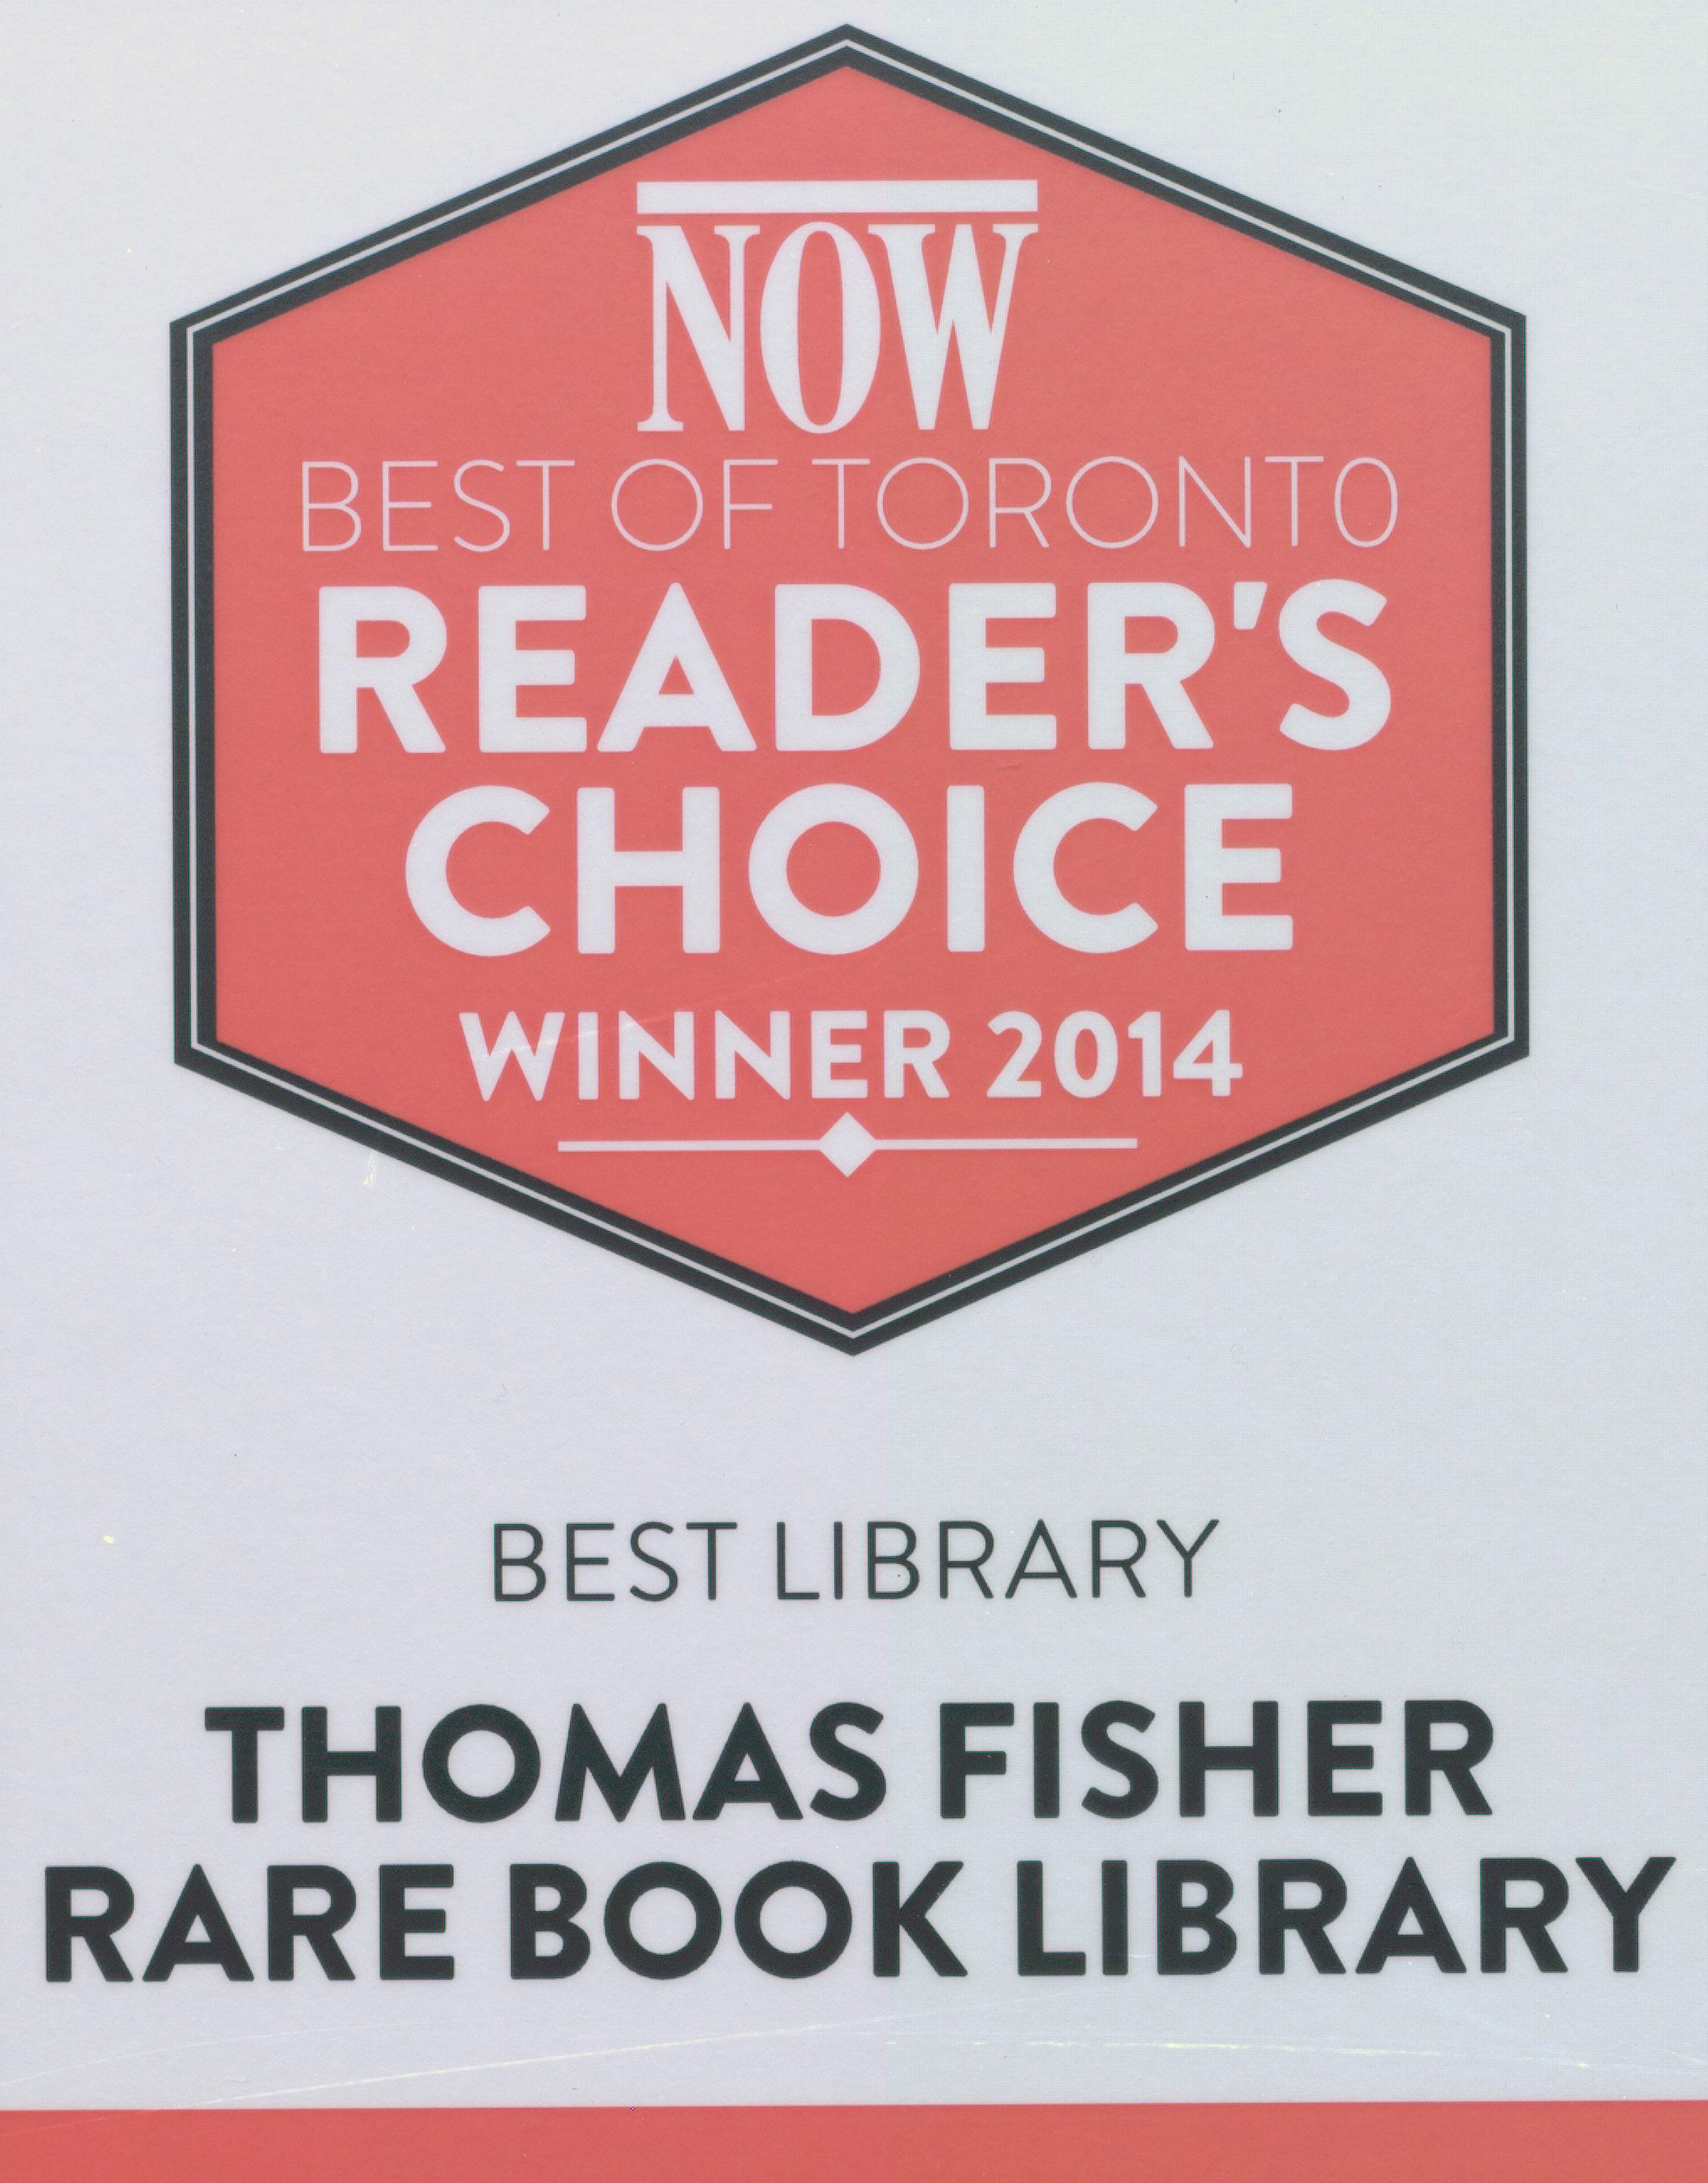 Plaque for Best Library, Now Magazine Reader's Poll: Best Library - Thomas Fisher Rare Book Library